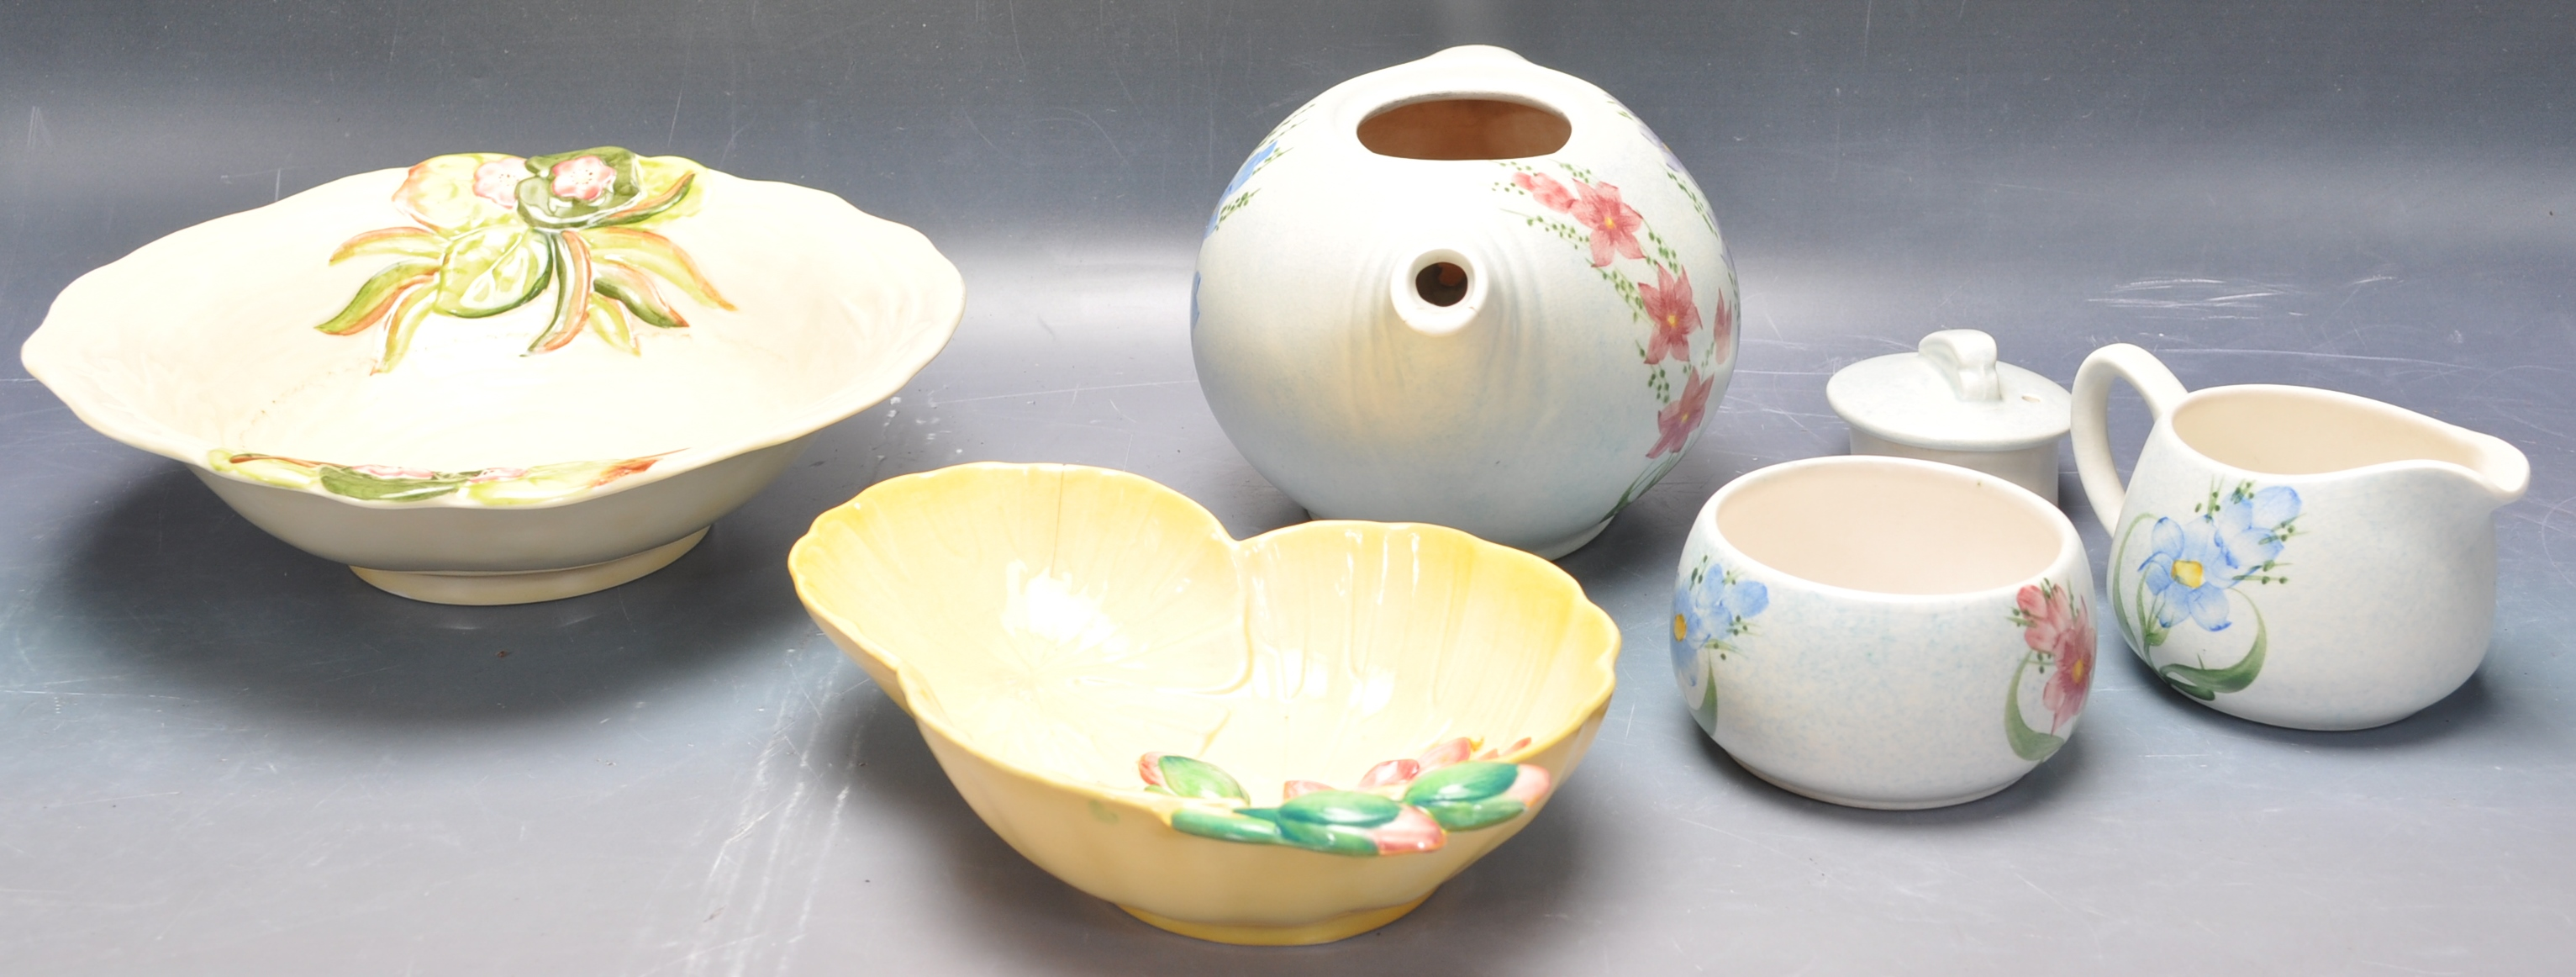 VINTAGE MID 20TH CENTURY CLARICE CLIFF BOWL WITH OTHERS - Image 3 of 8